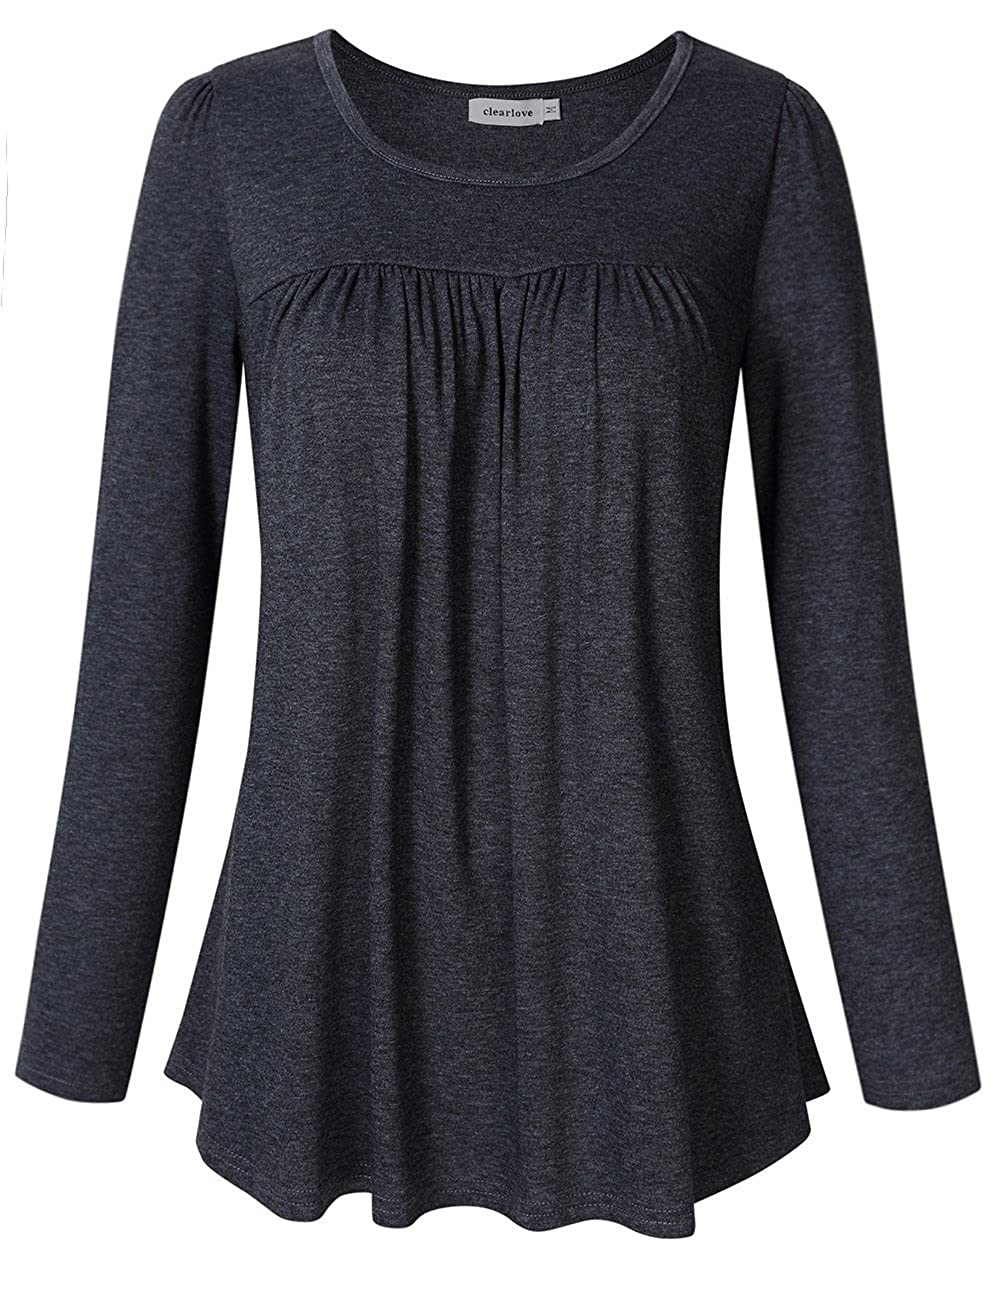 2b8e5bc939814 Top 10 wholesale Size 14 Styles Flattering - Chinabrands.com